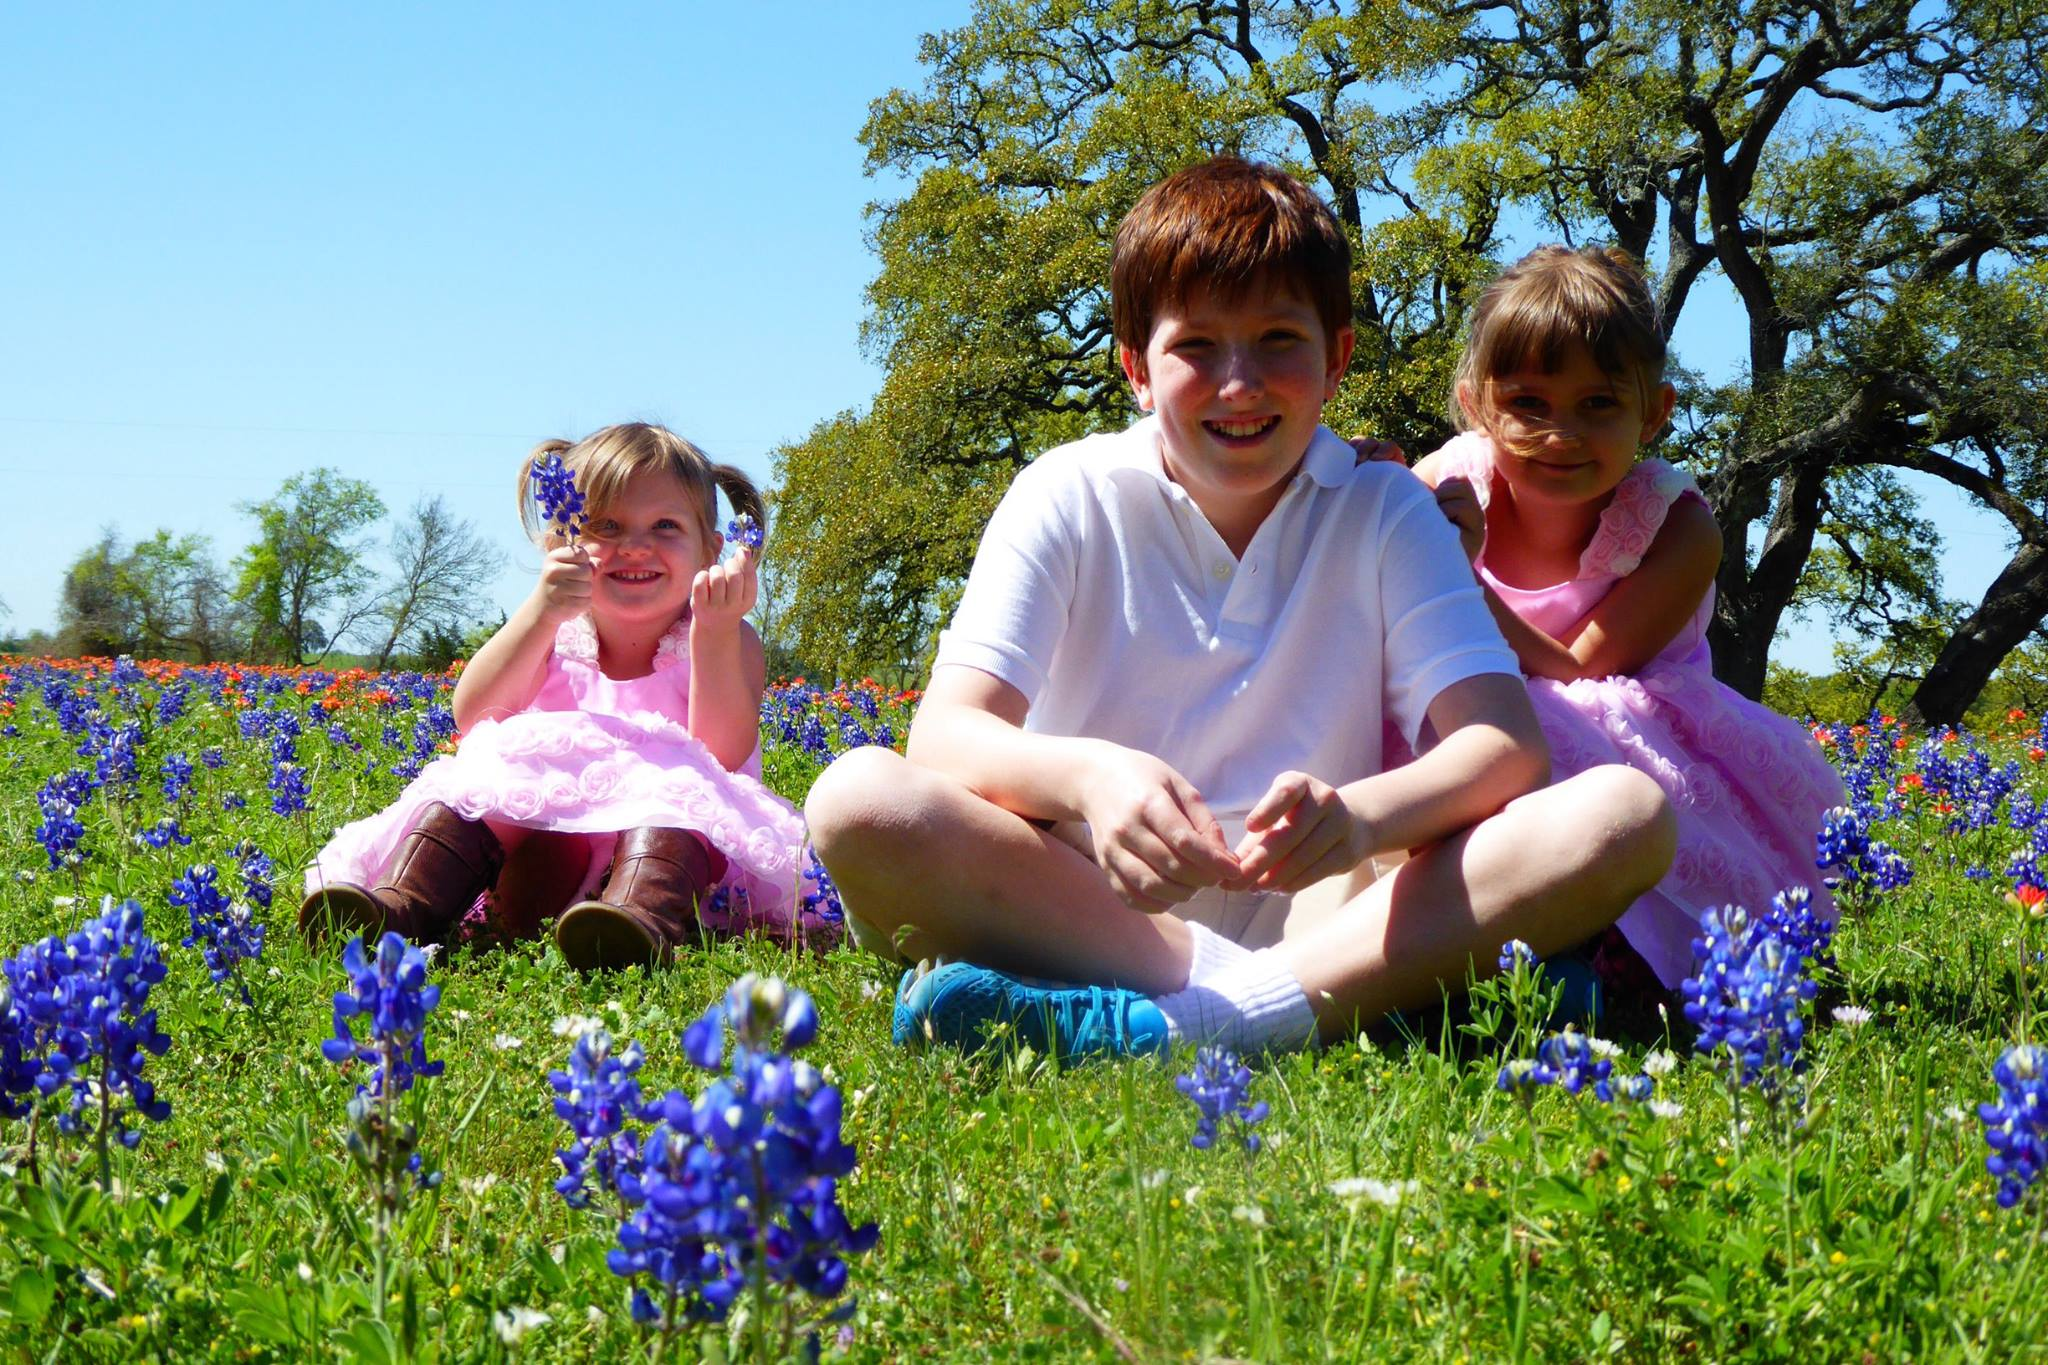 two blonde girls in pink dresses and a redheaded tween boy sit in a field of bluebonnets